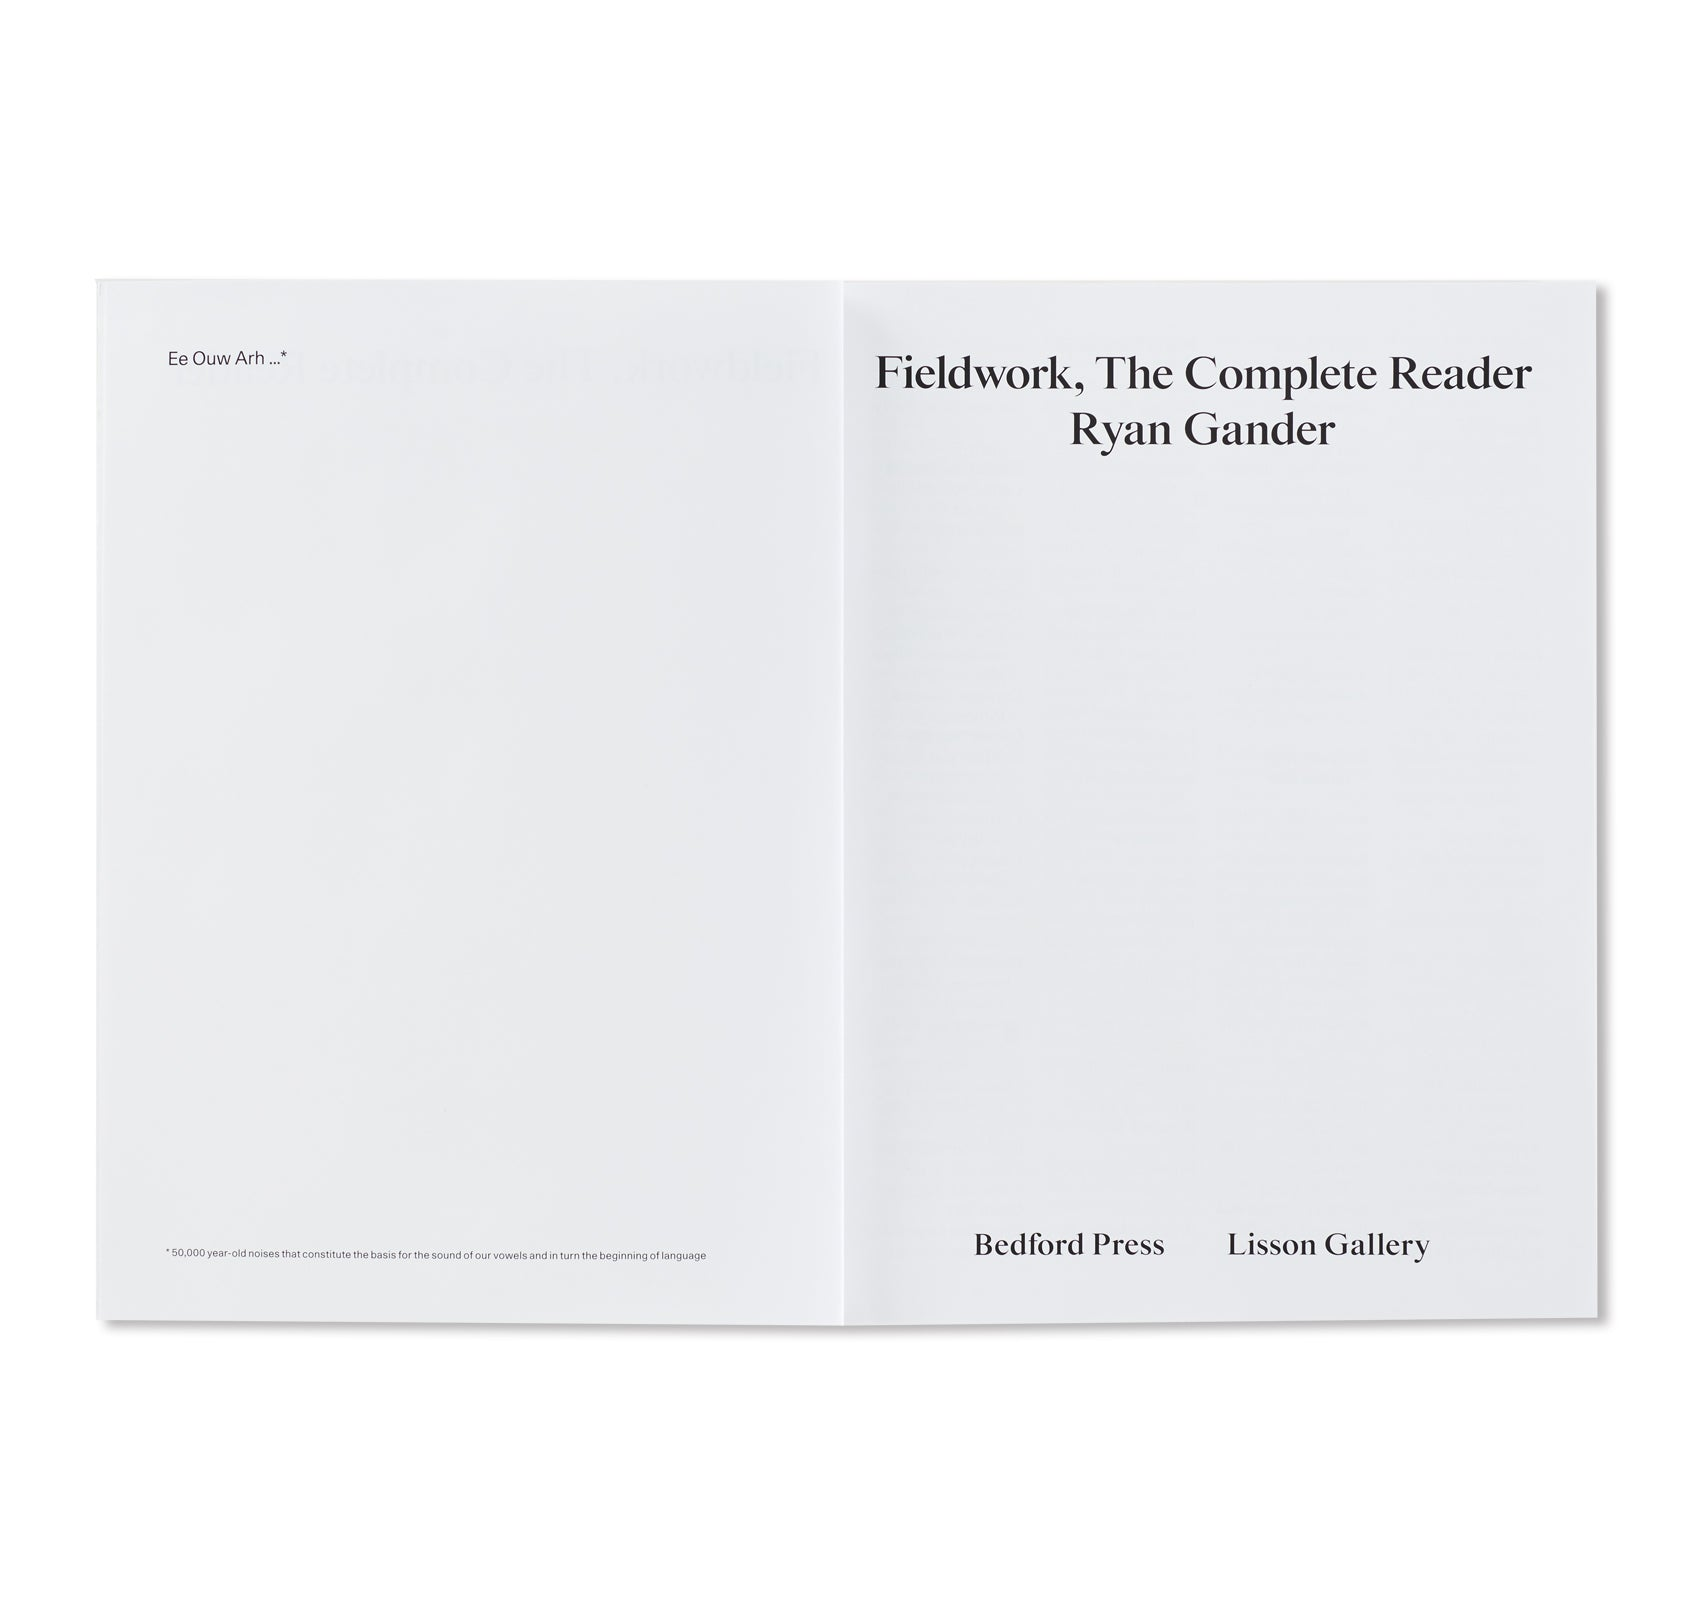 FIELDWORK, THE COMPLETE READER by Ryan Gander